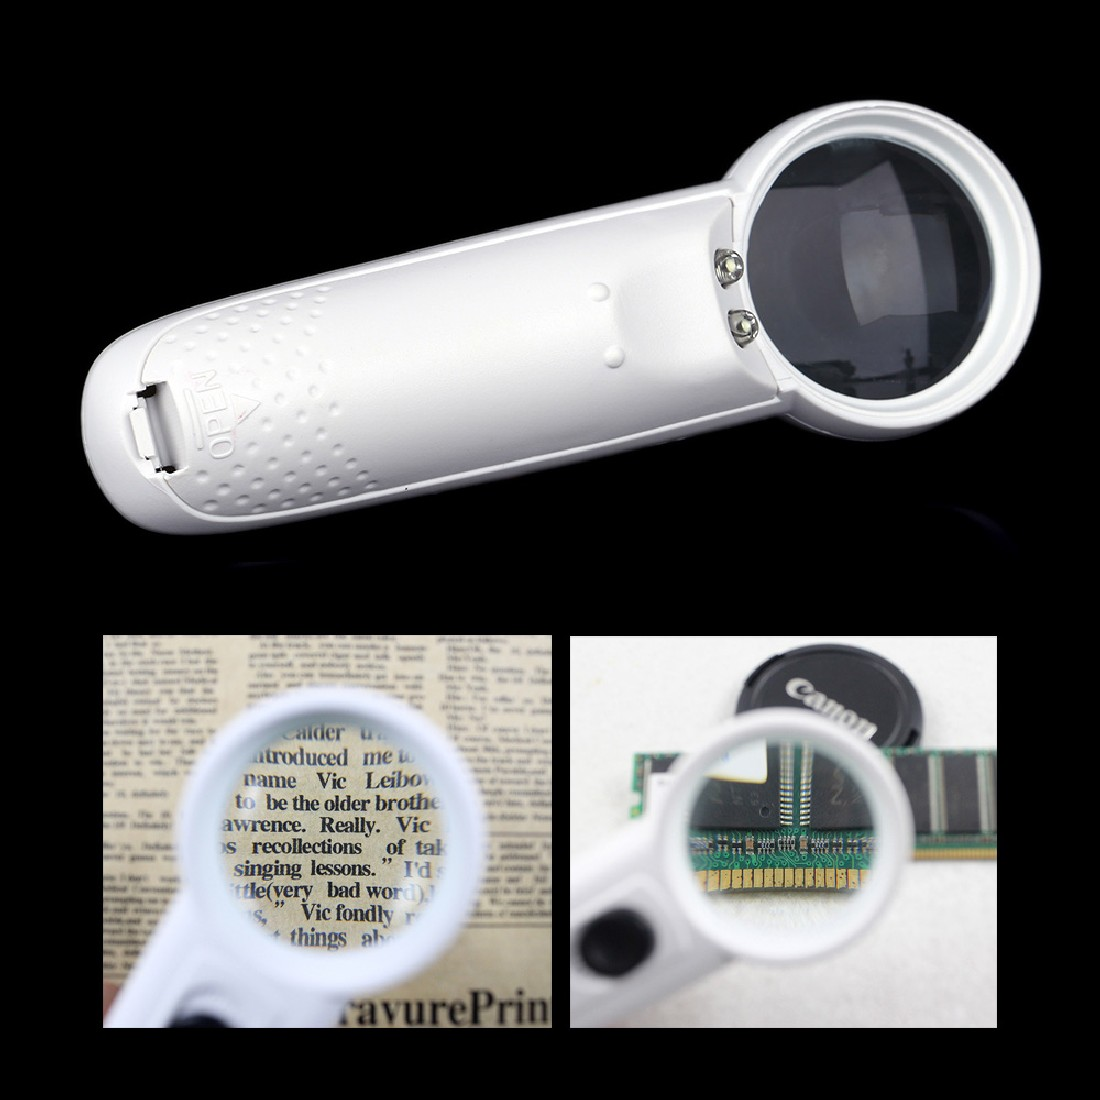 High 1pc Professional 37mm Diameter 15X Magnifier Portable Pocket Handheld Glass Loupe Magnifying Tool With 2 LED Light Lamps